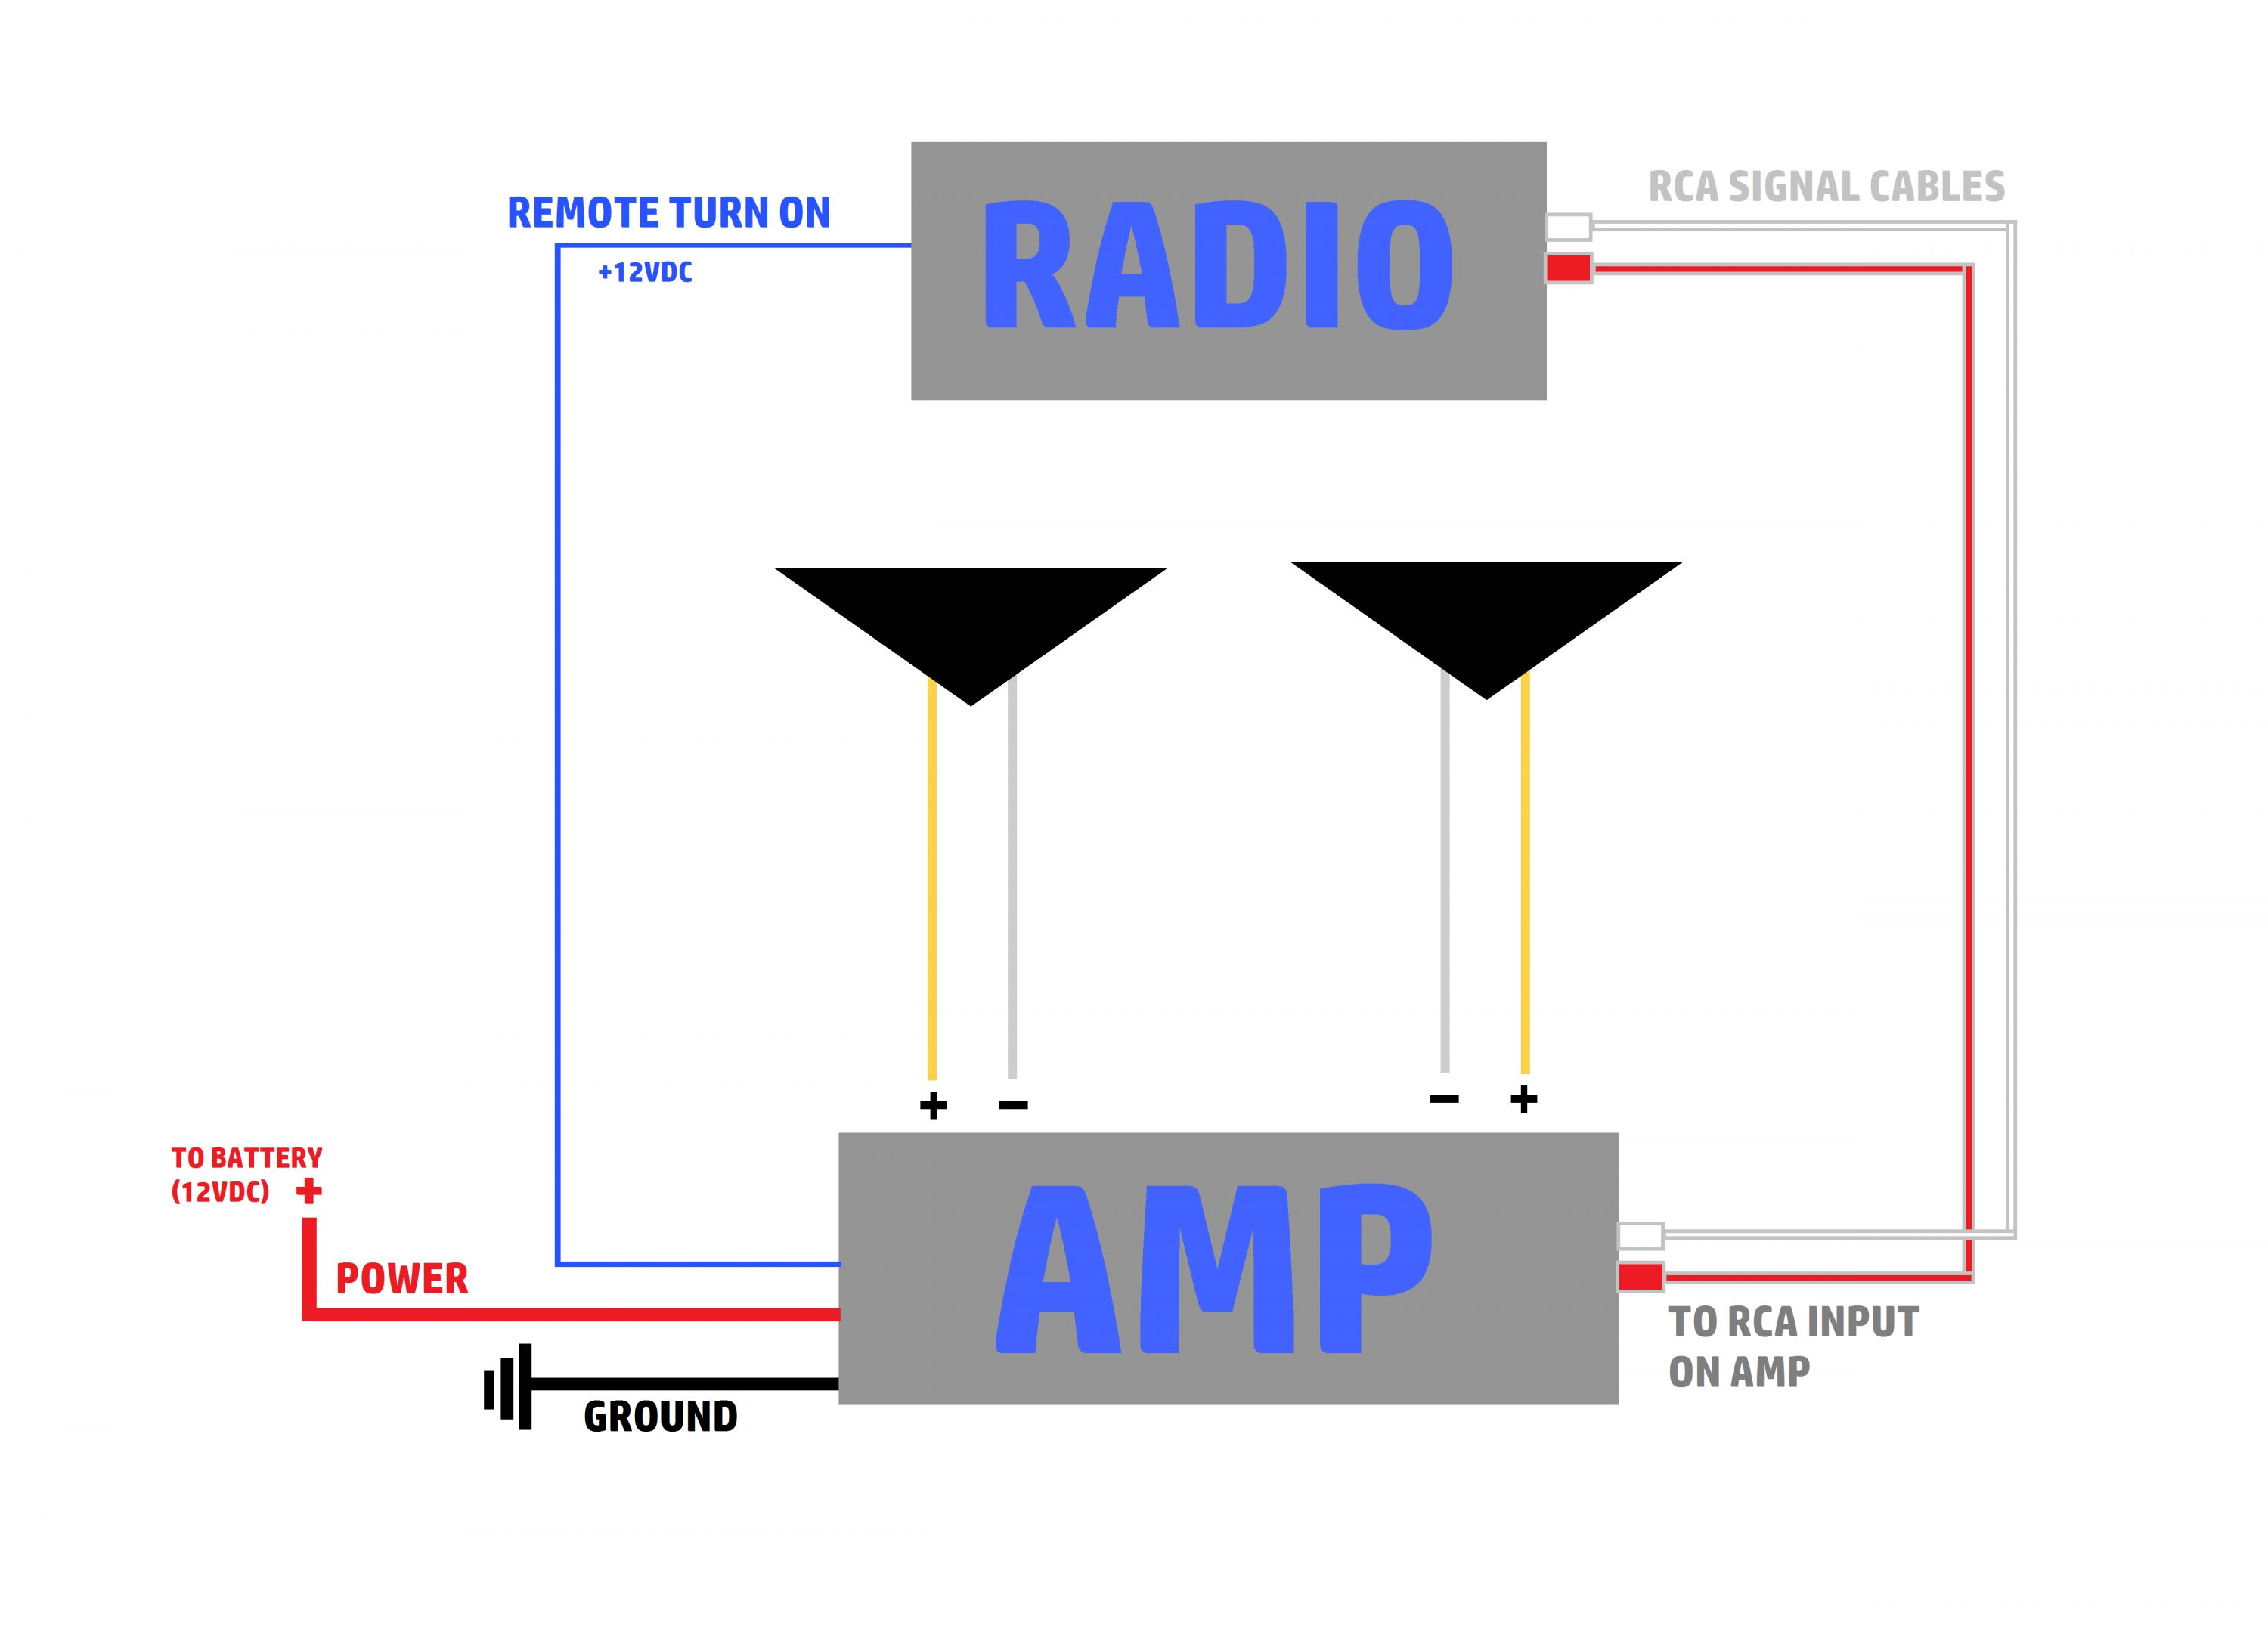 Car Stereo Power Amp Wiring Diagram And How To Install And Tune An Amp Car Audio Advice Audio Design Car Audio Car Amplifier